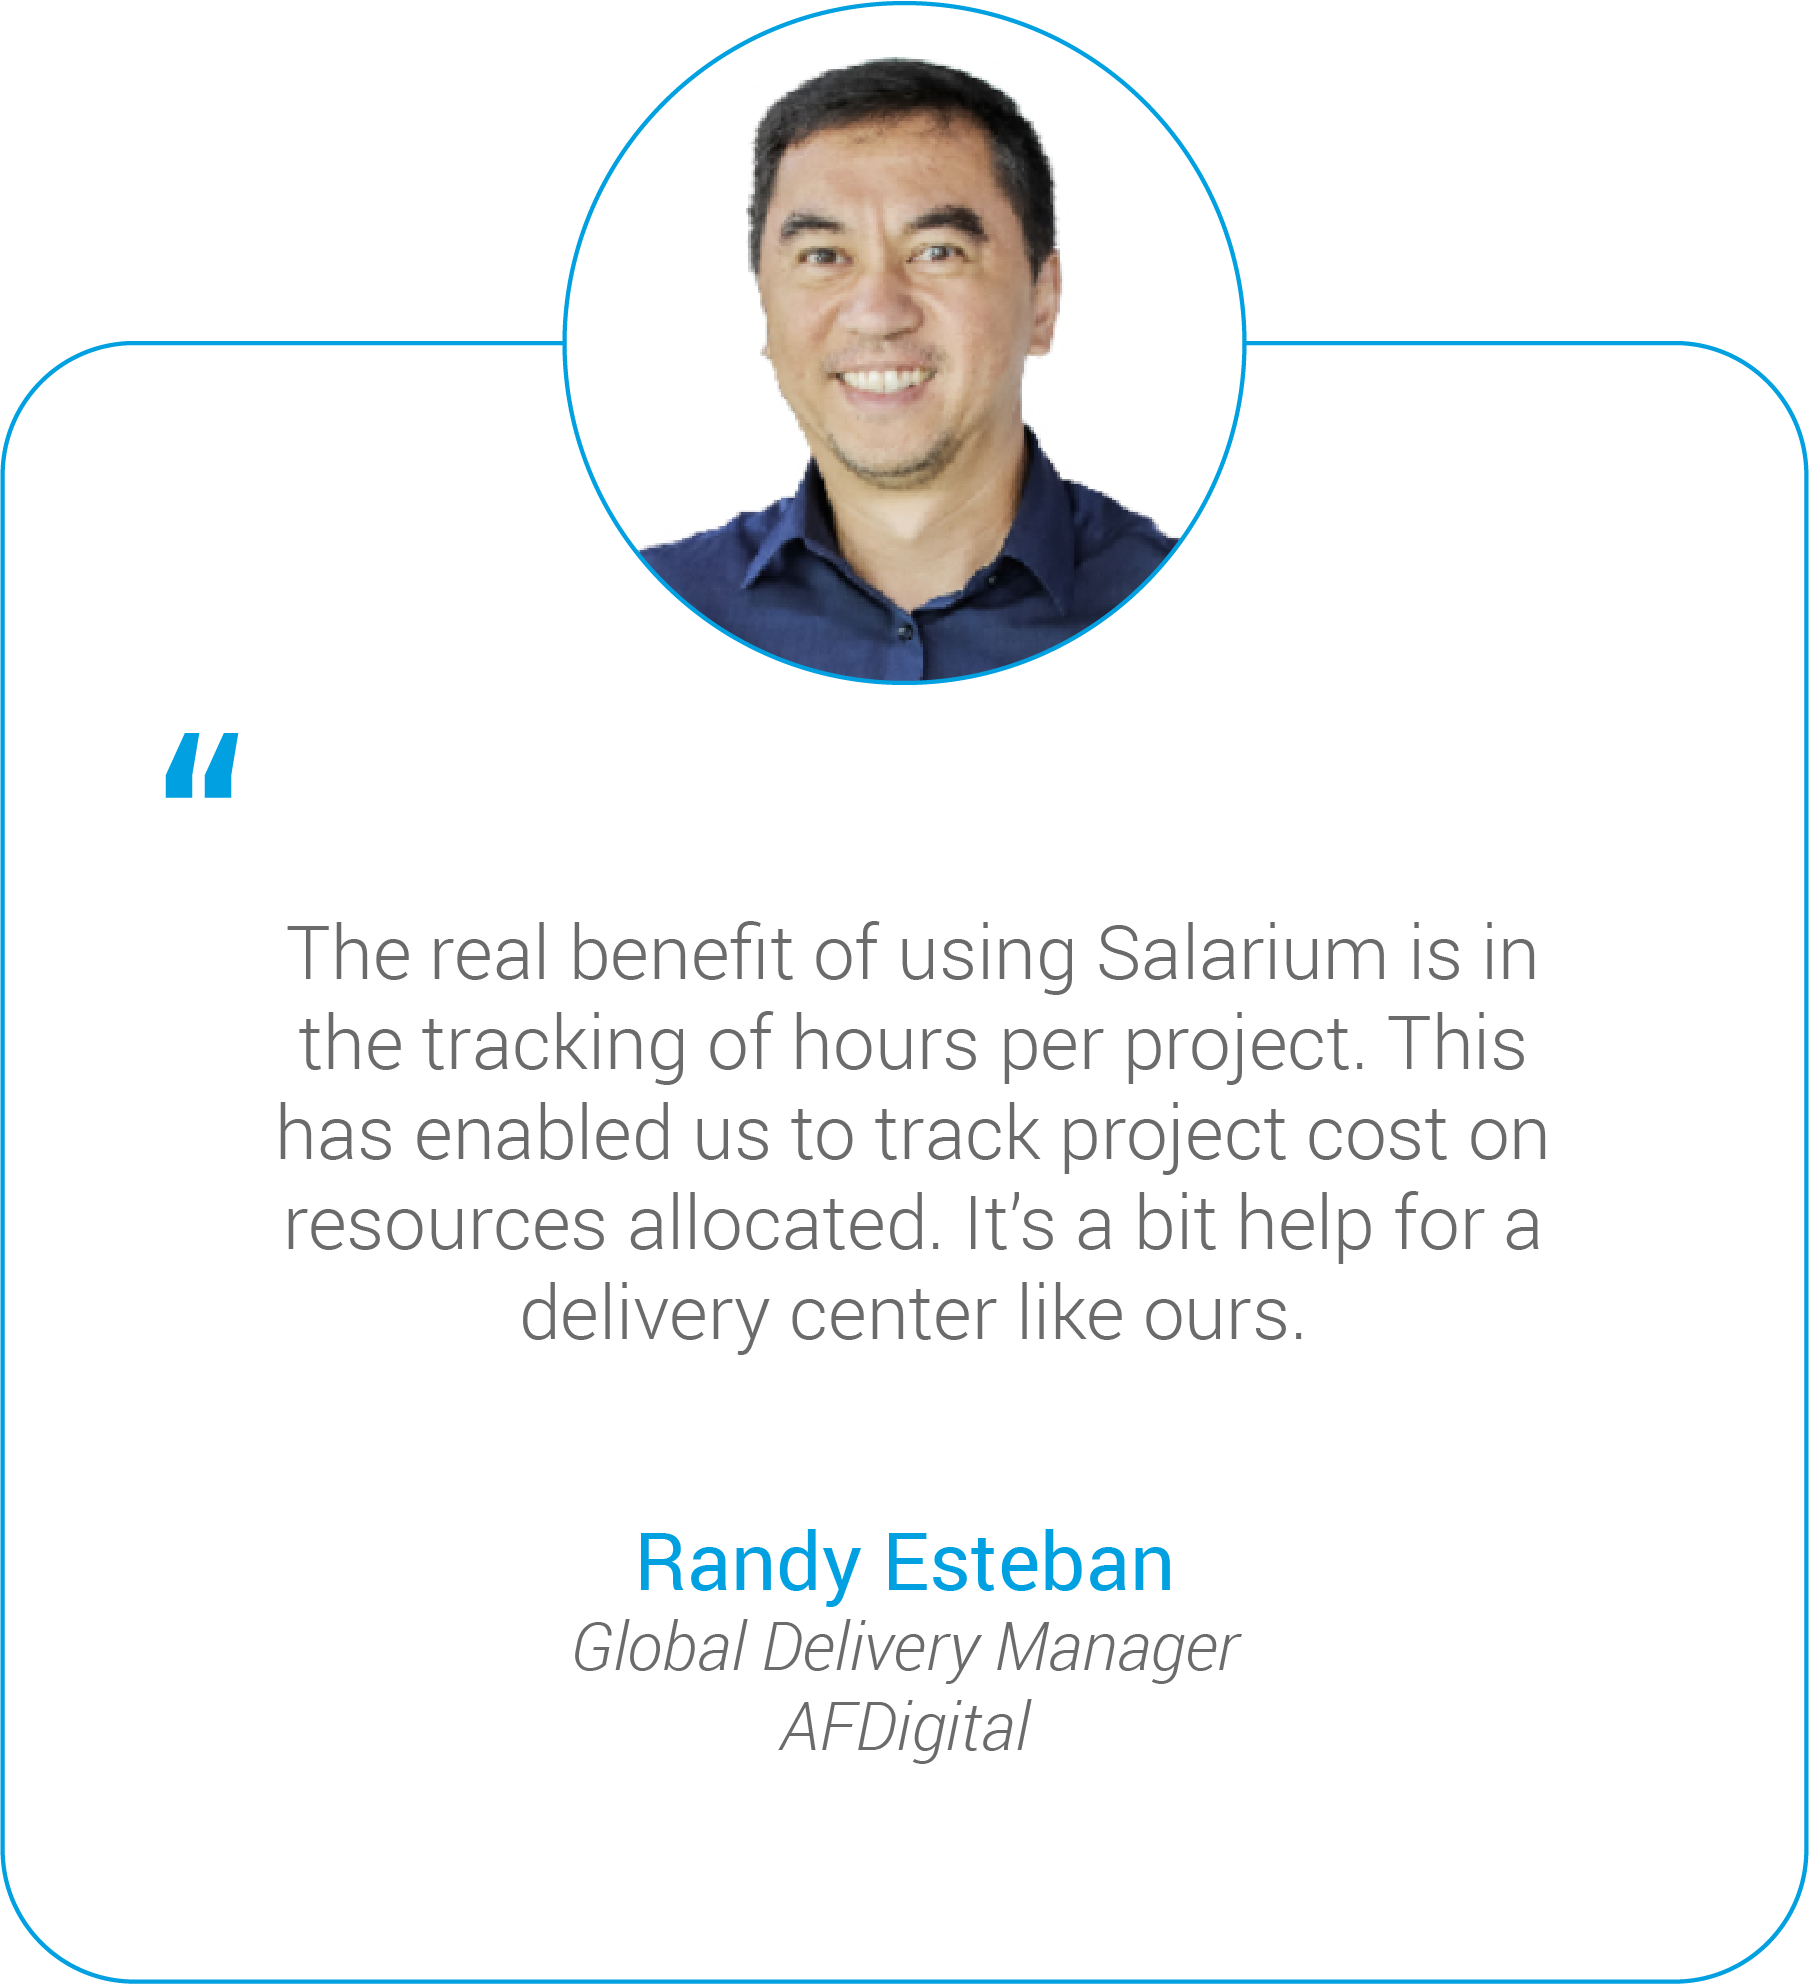 benefit of using salarium is in the tracking of hours per project